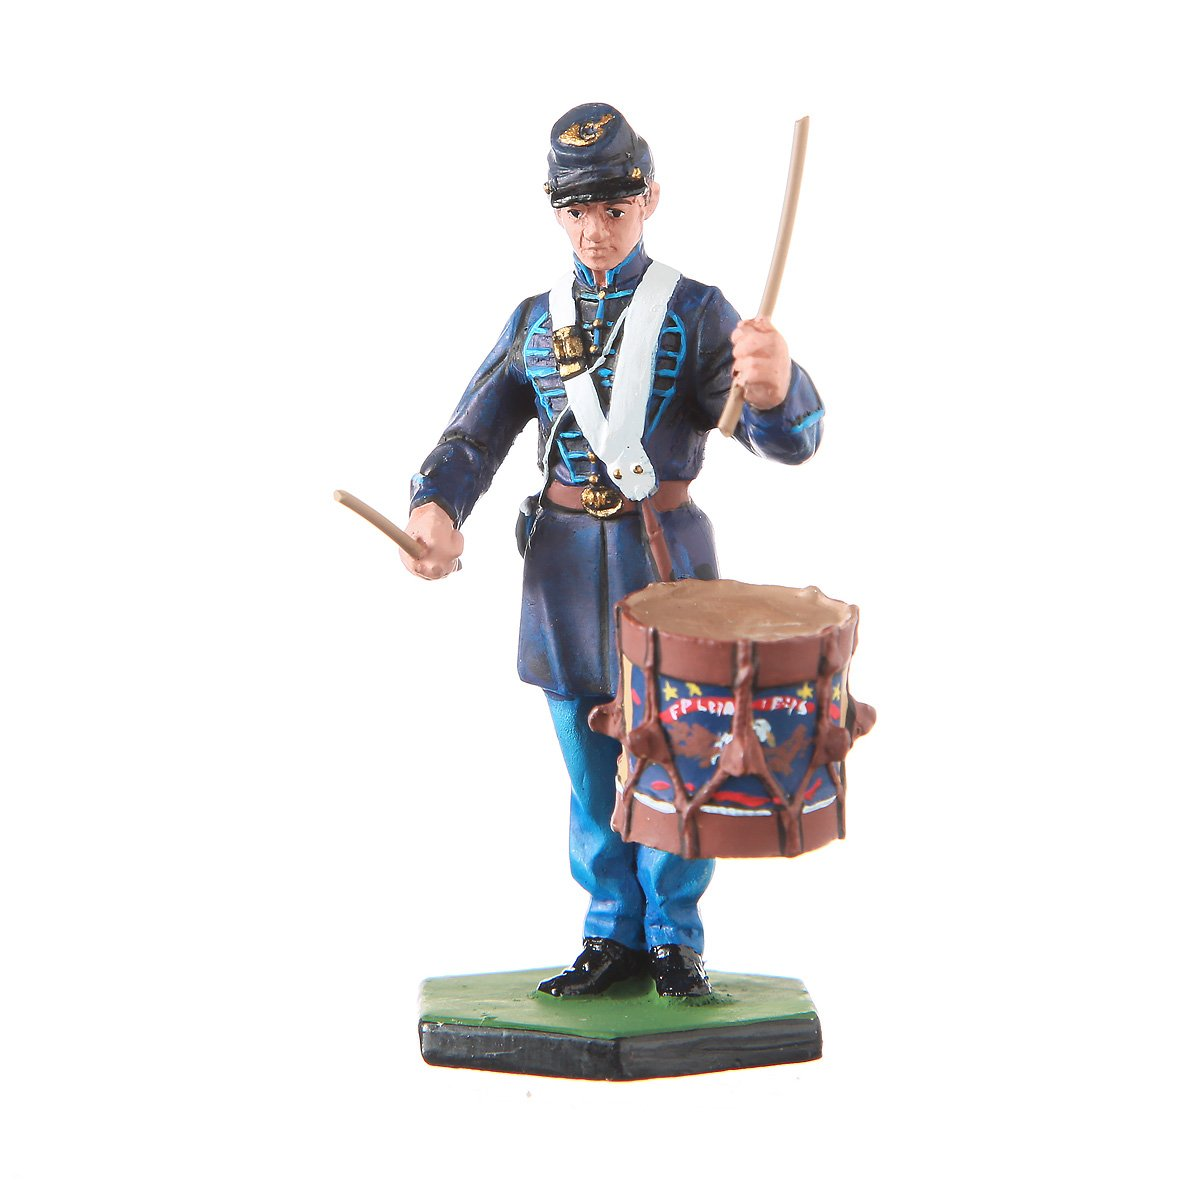 danila-souvenirs Tin Toy Soldier USA Civil war Northerners Drummer Hand Painted Metal Sculpture Miniature Figurine 54mm #CW05